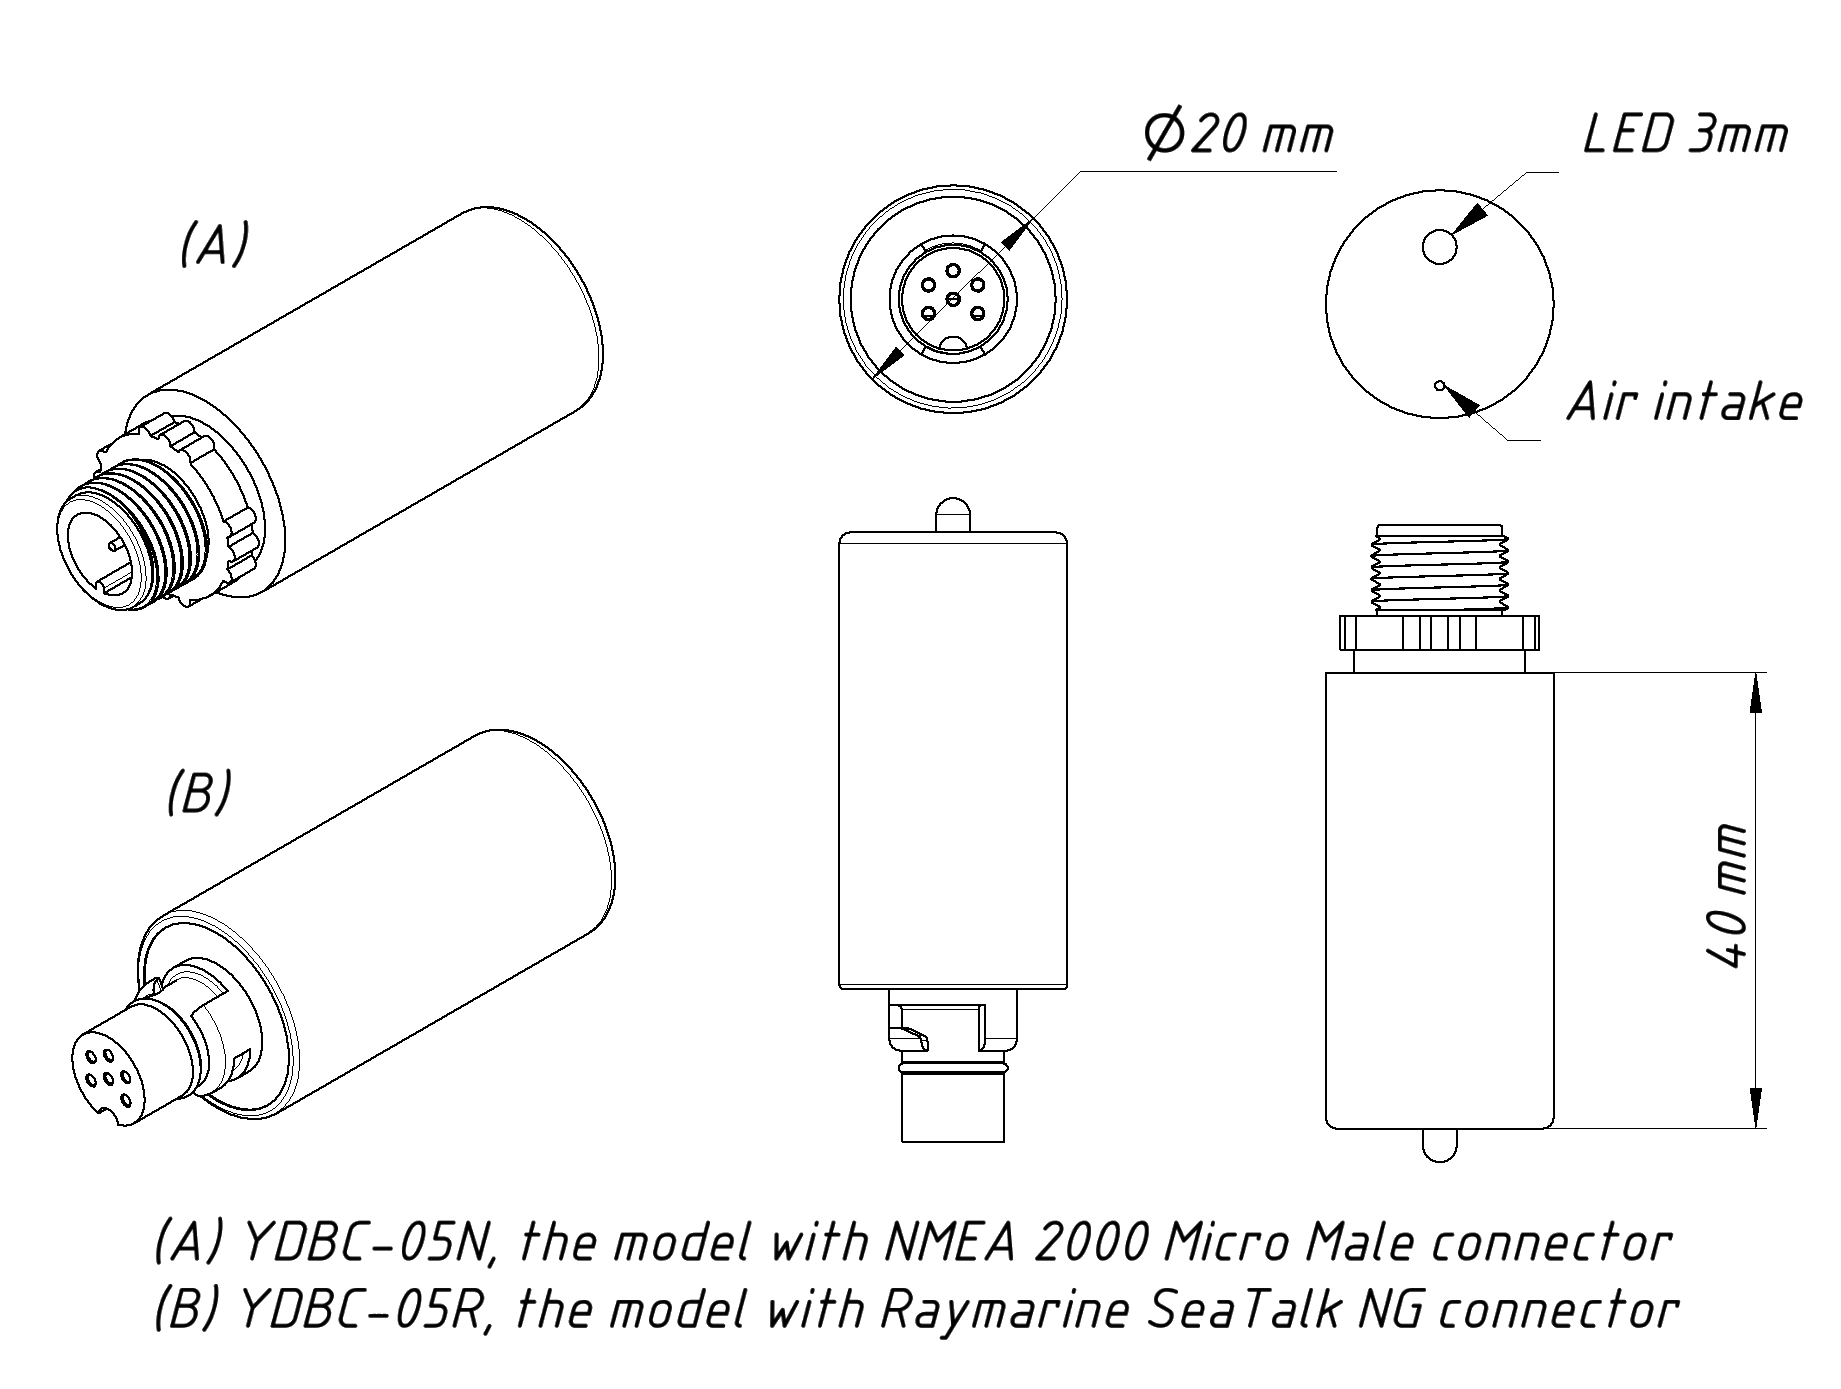 Digital Barometer For Nmea 2000 T Connector Wiring Diagram Drawing Of Ydbc 05n And 05r Models